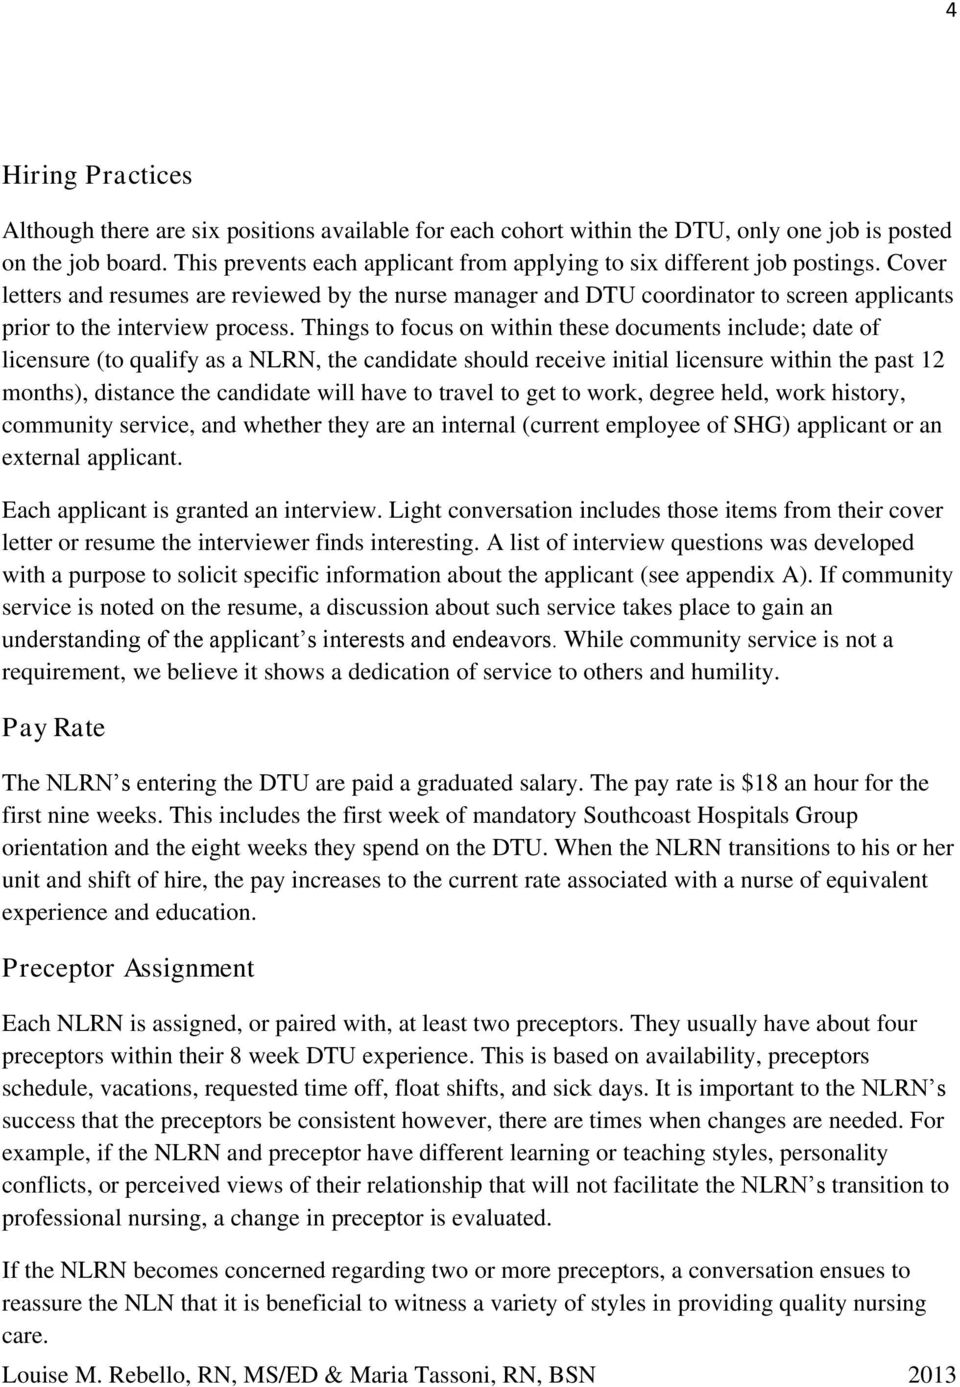 nurse residency program manual pdf cover letters and resumes are reviewed by the nurse manager and dtu coordinator to screen applicants